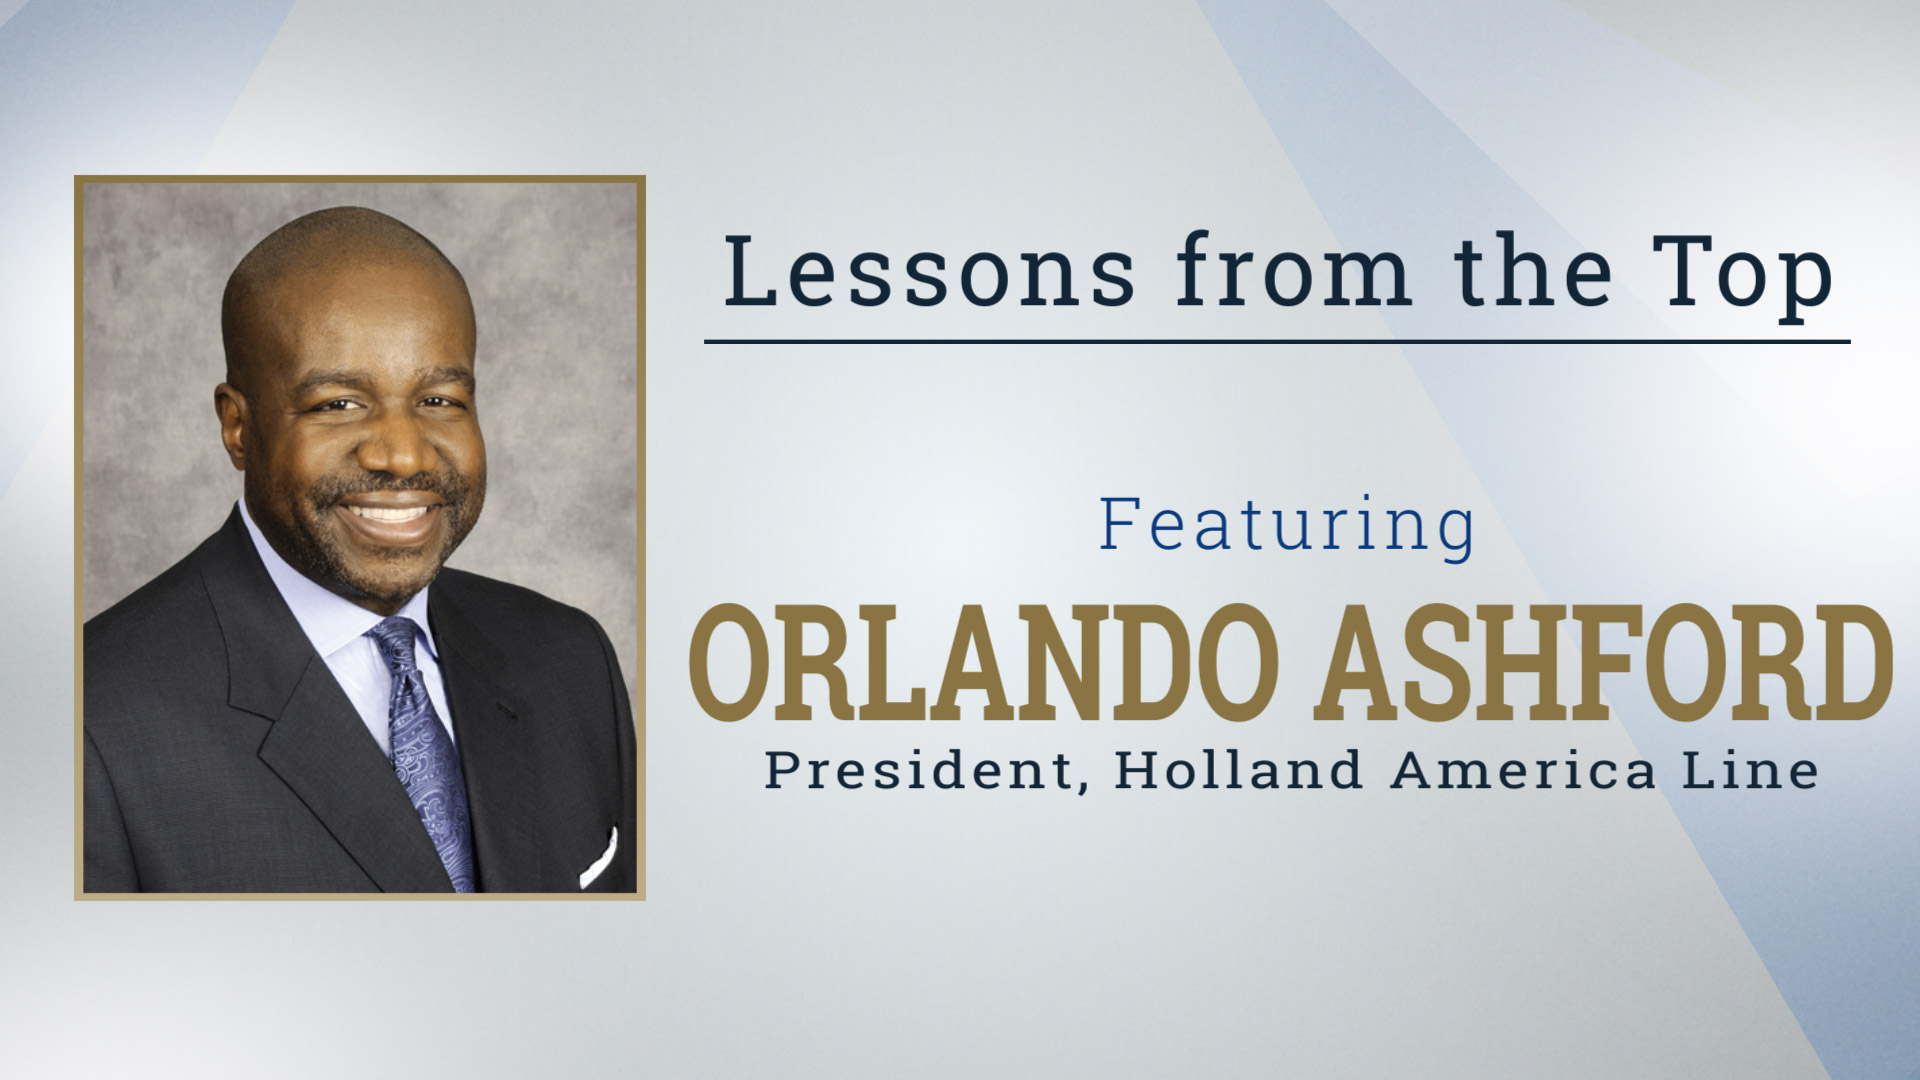 Lessons from the Top Featuring Orlando Ashford